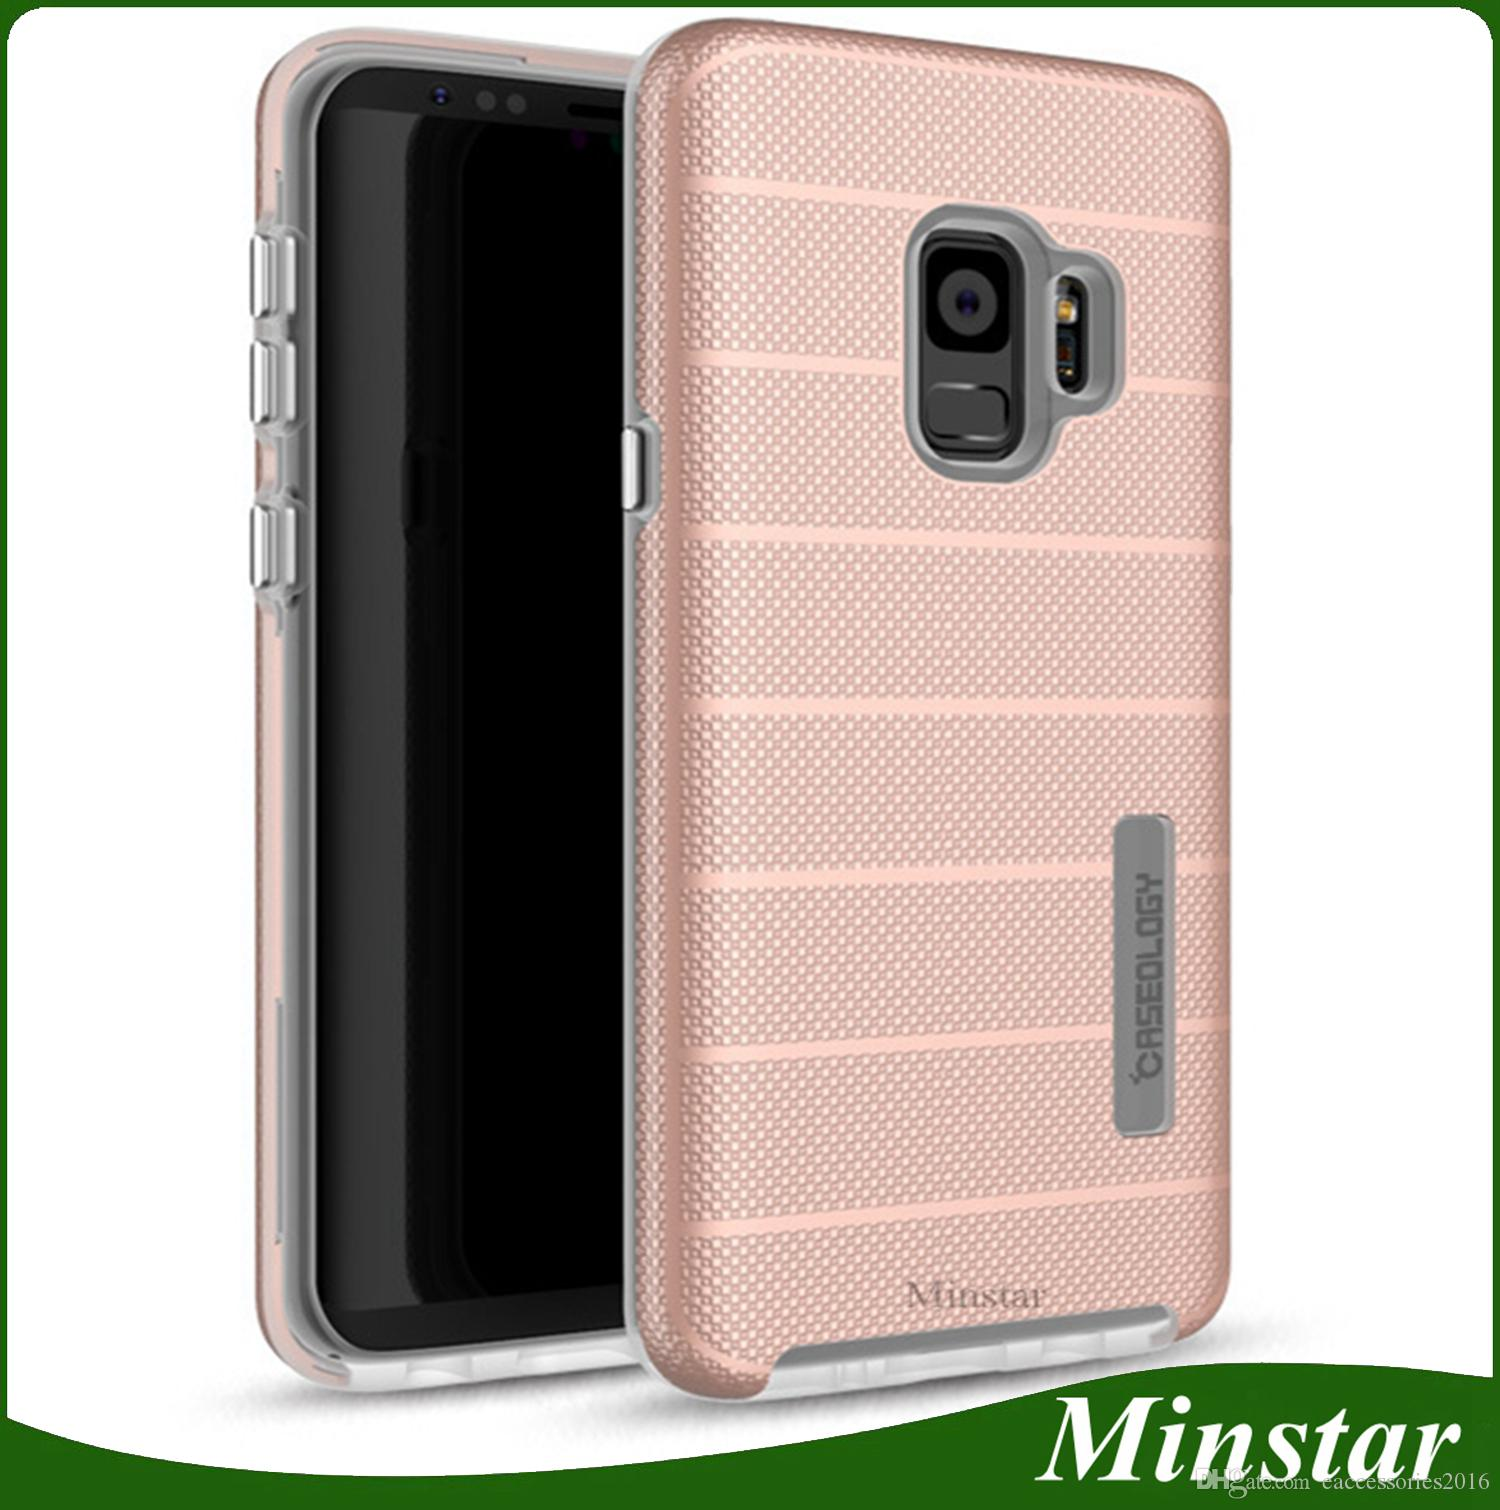 Metro PCS For Samsung Galaxy S9 J7 Prime J3 Prime 2017 Stylo 4 Stylo 3 Plus Aristo 2 K20 Plus Caseology Anti shock Phone Case Hybrid Cover Galaxy J3 Prime